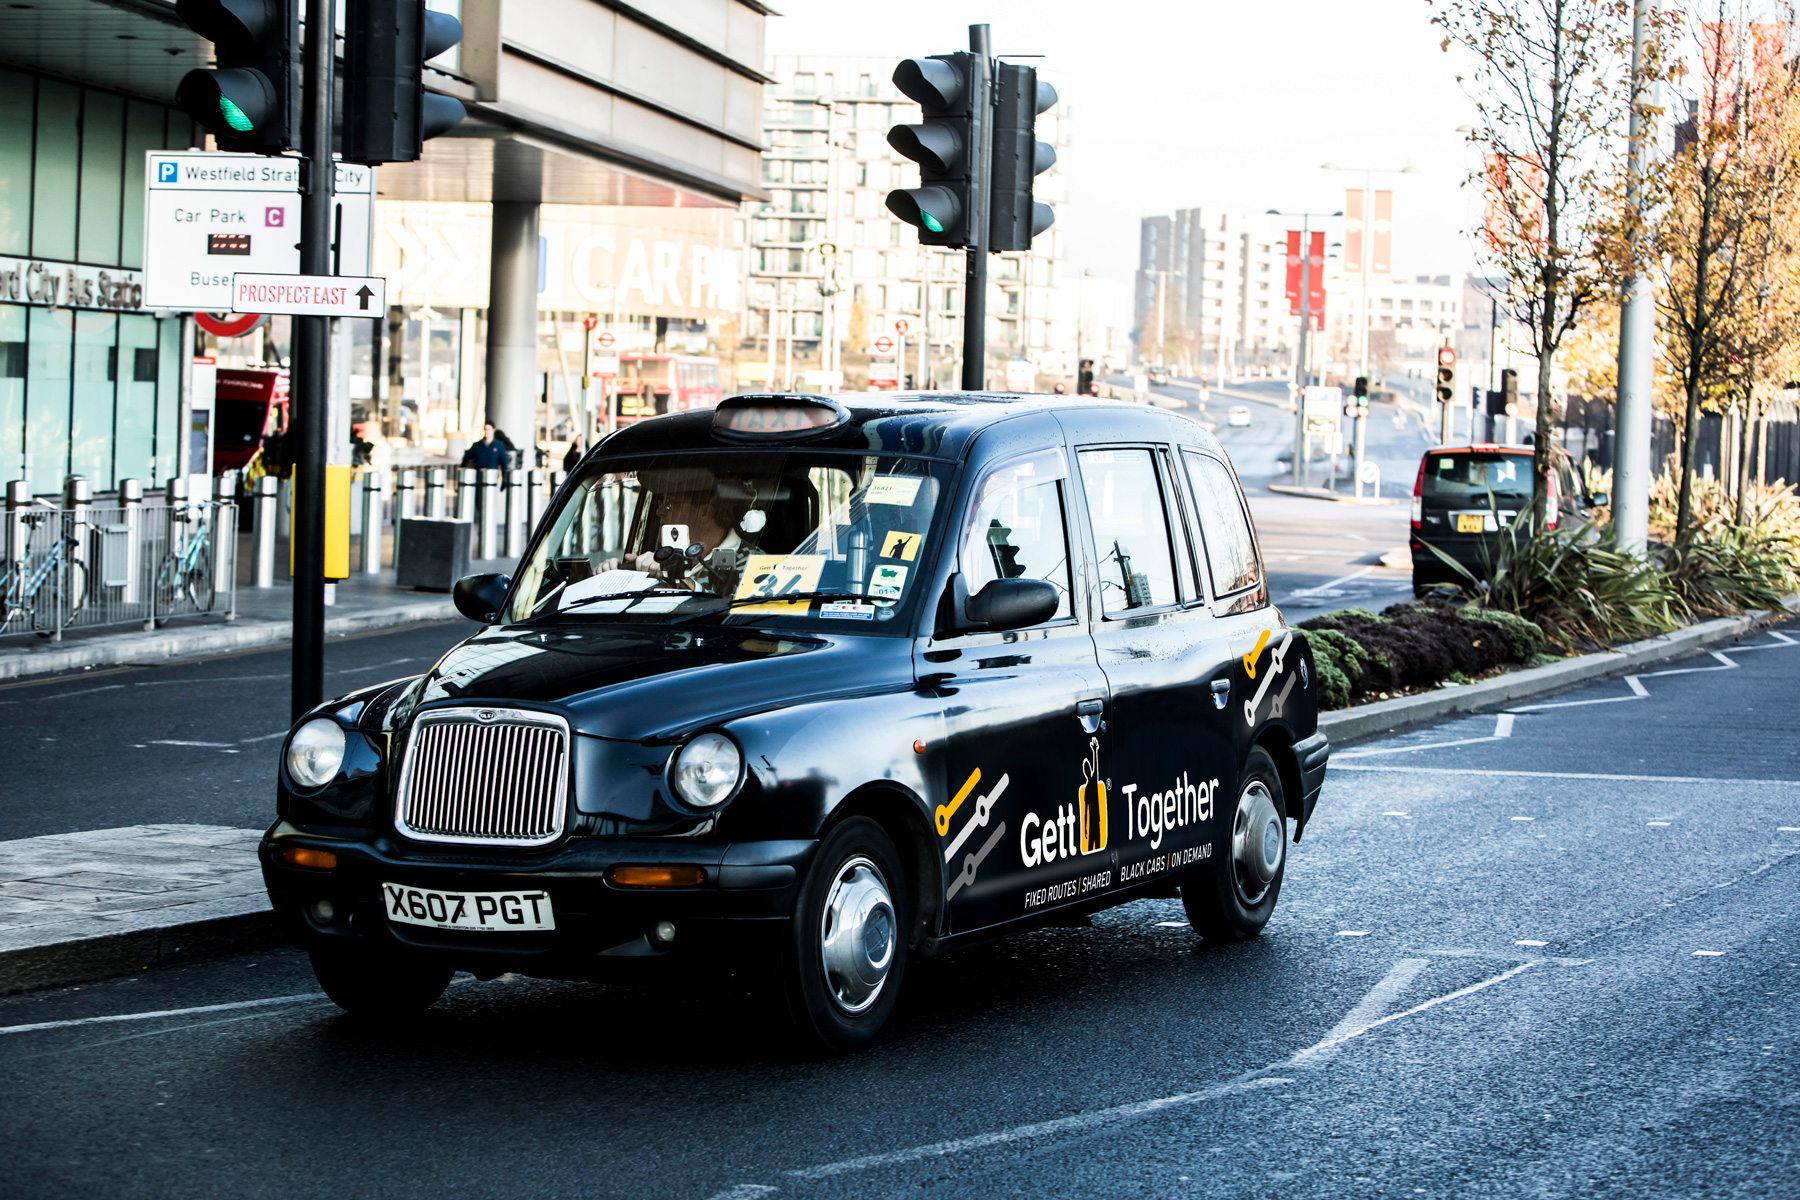 Gett is using Citymapper data to plot new ride-sharing routes